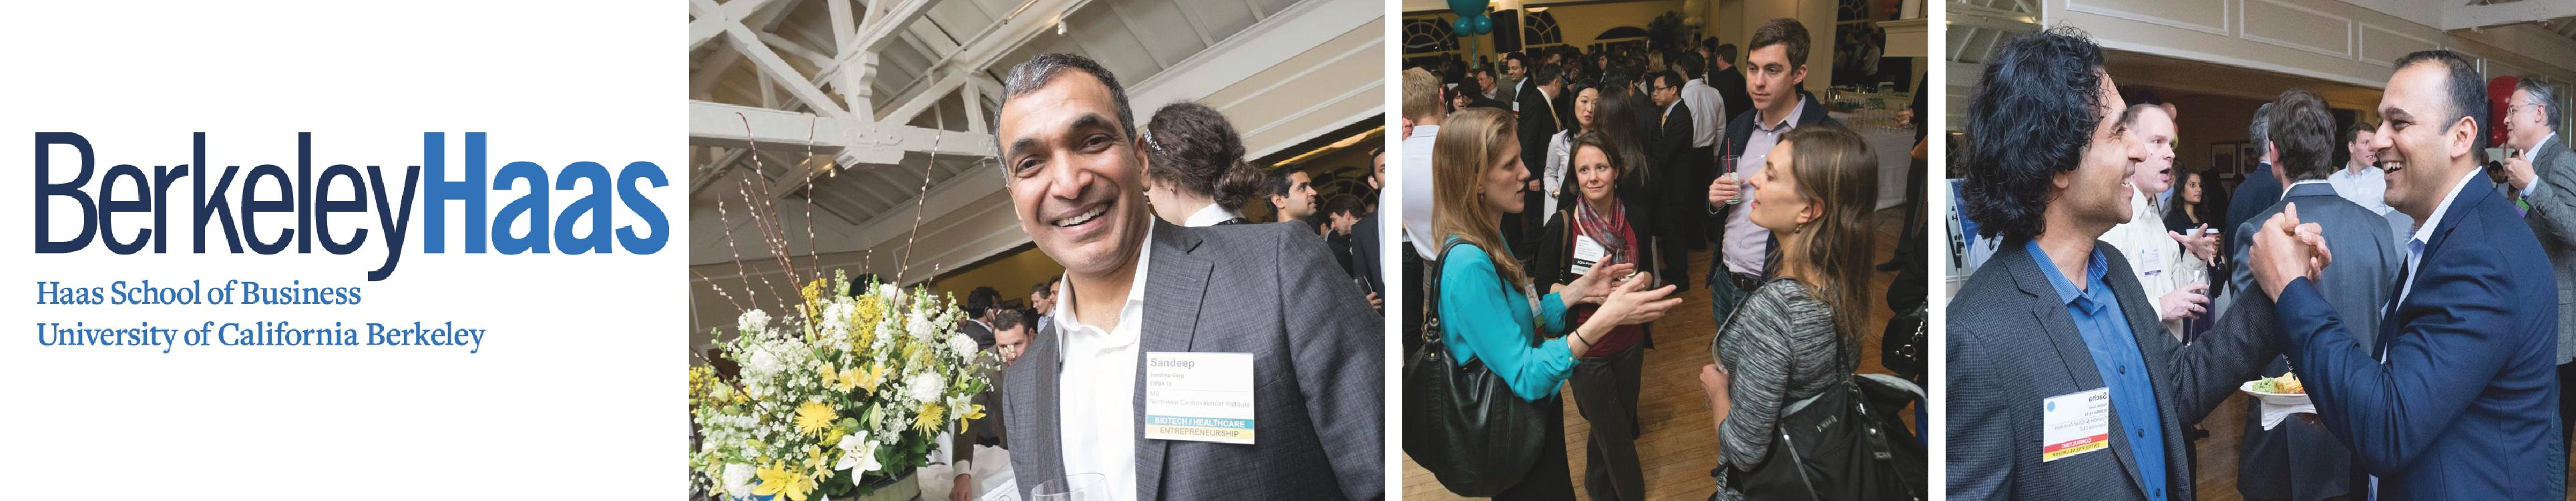 17th Annual Berkeley-Haas Celebration in Silicon Valley